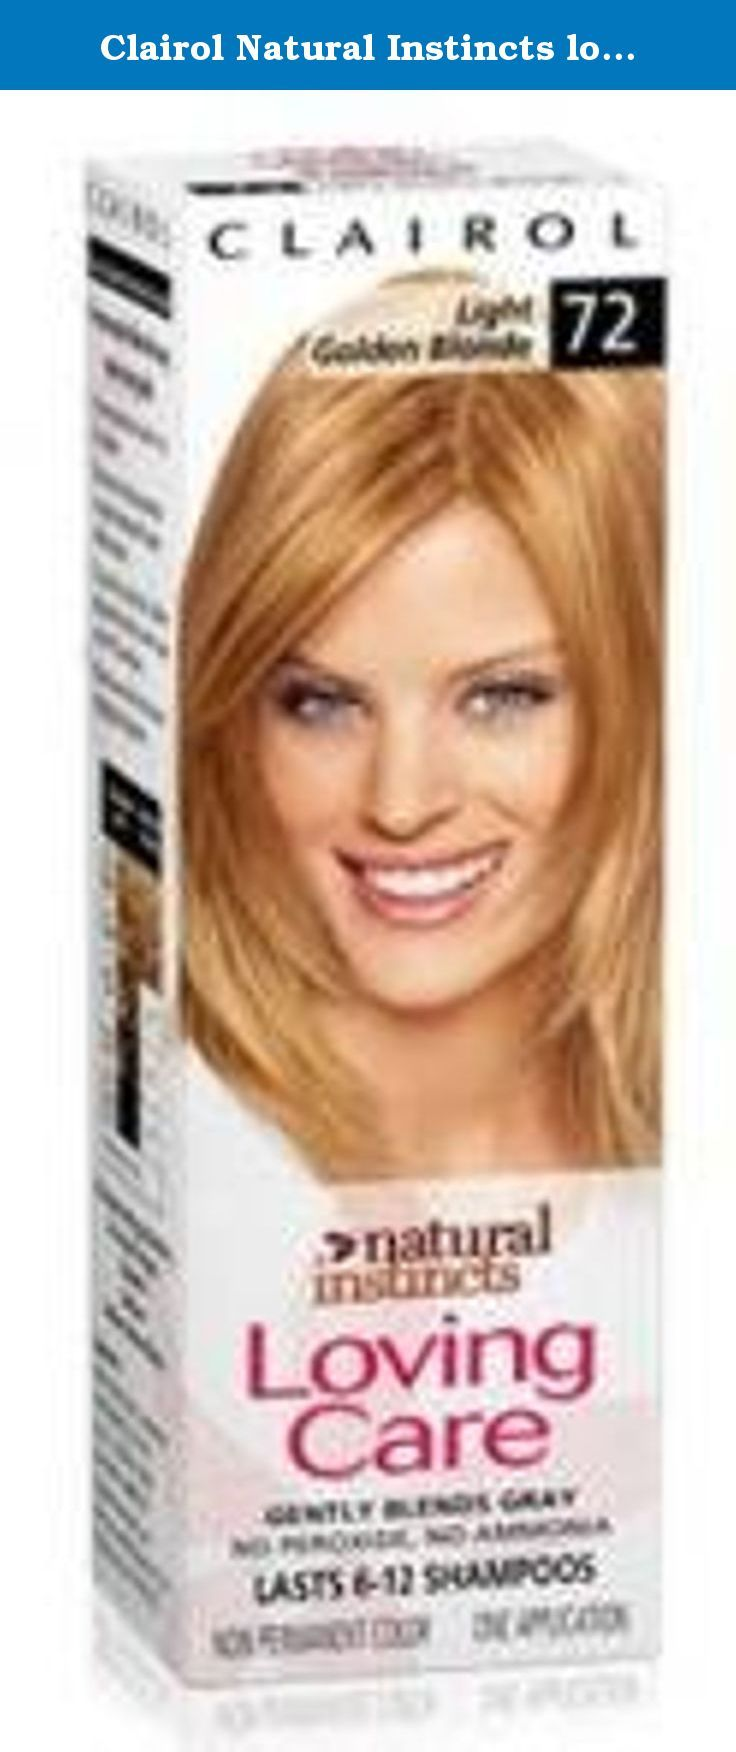 Clairol Natural Instincts Loving Care Non Permanent Hair Color 72